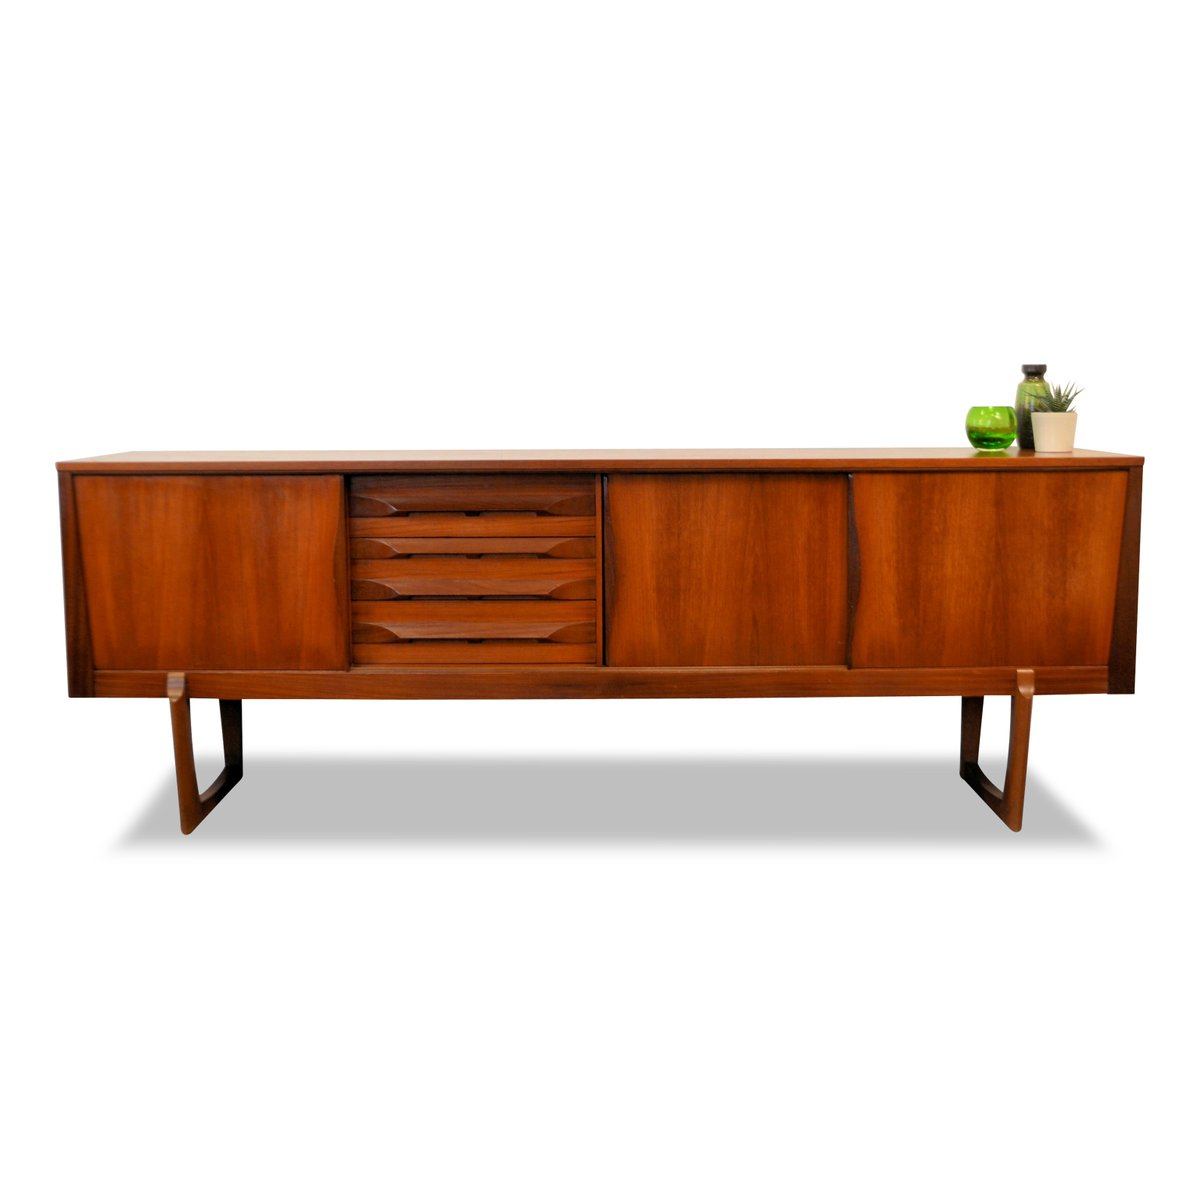 mid century modern teak sideboard from elliots for sale at pamono. Black Bedroom Furniture Sets. Home Design Ideas